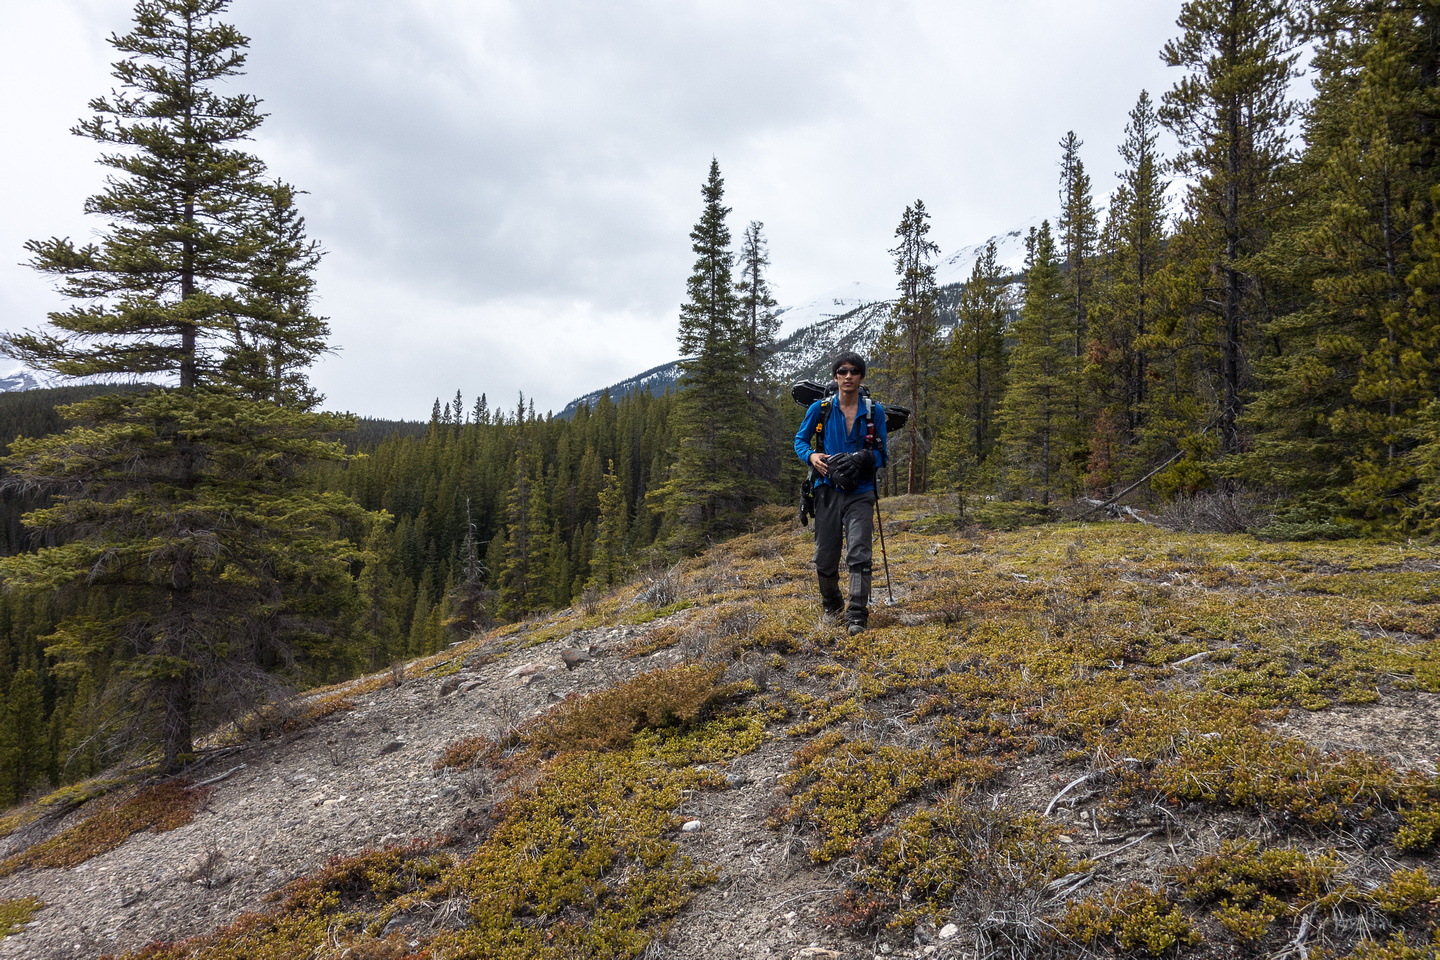 We find a nice clear gravel ridge on our 'shortcut' down the south side of the east ridge.